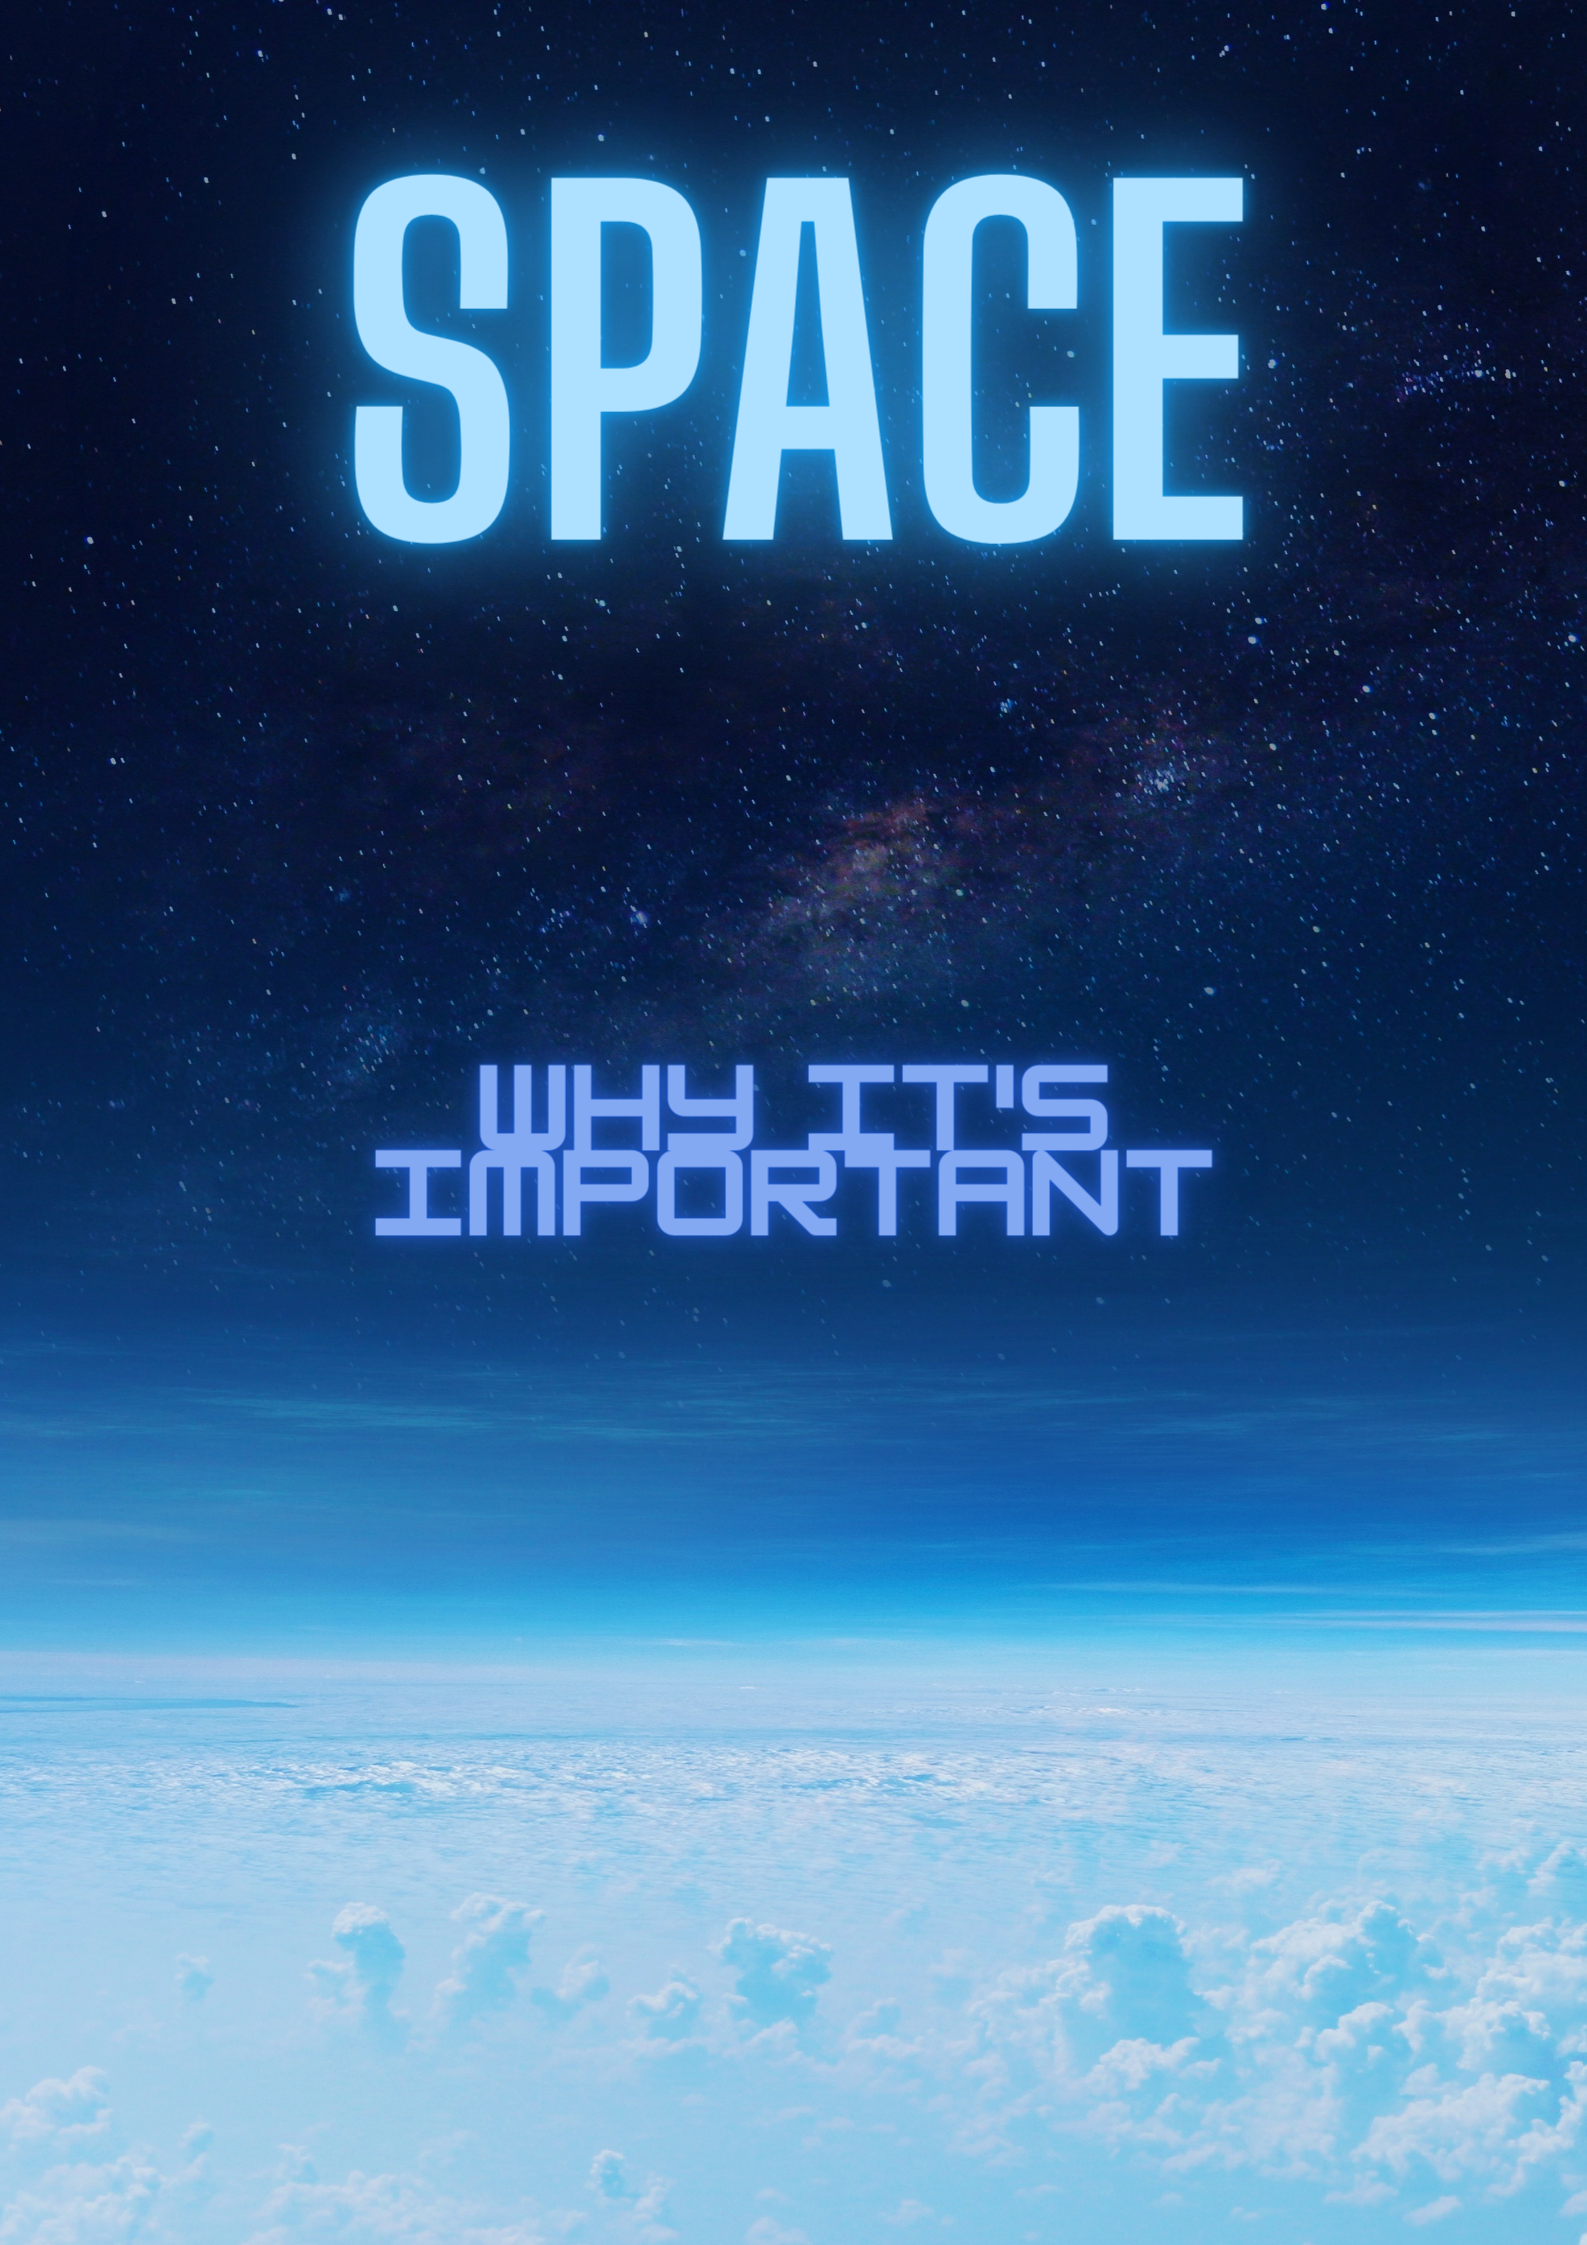 The value of space